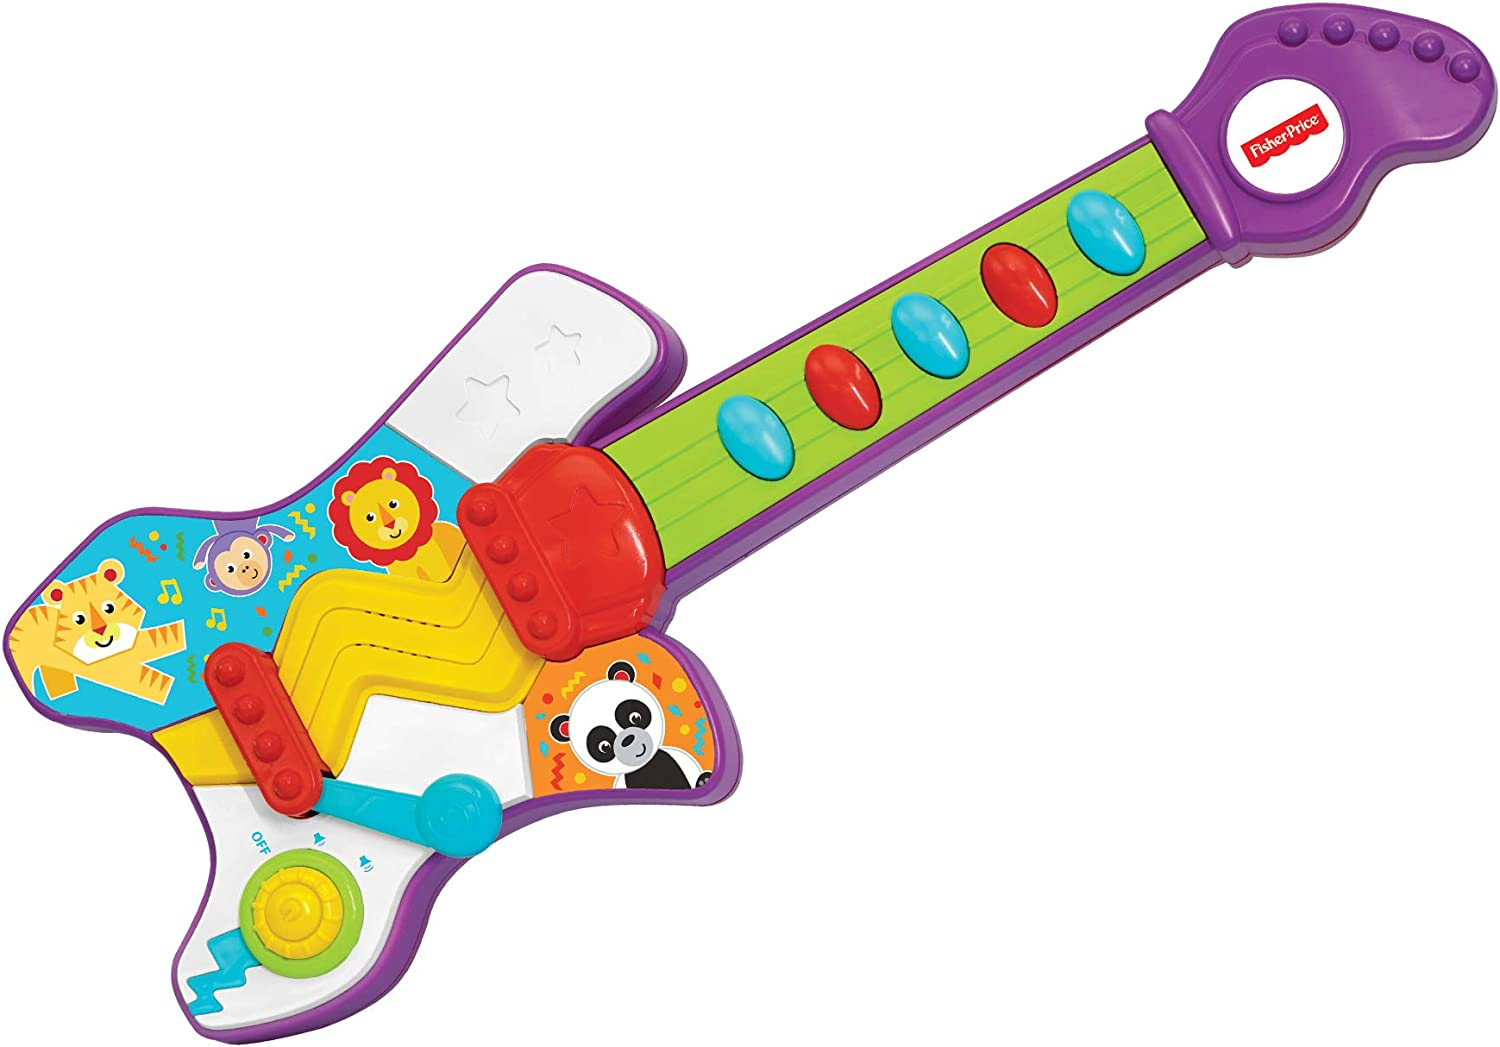 Fisher-Price – Jump 'N' Jam Guitar, Realistic Electronic Musical Toy, Developmental Musical Instrument, Educational Toy, Learn to Play Guitar, Toddler, Ages 2+